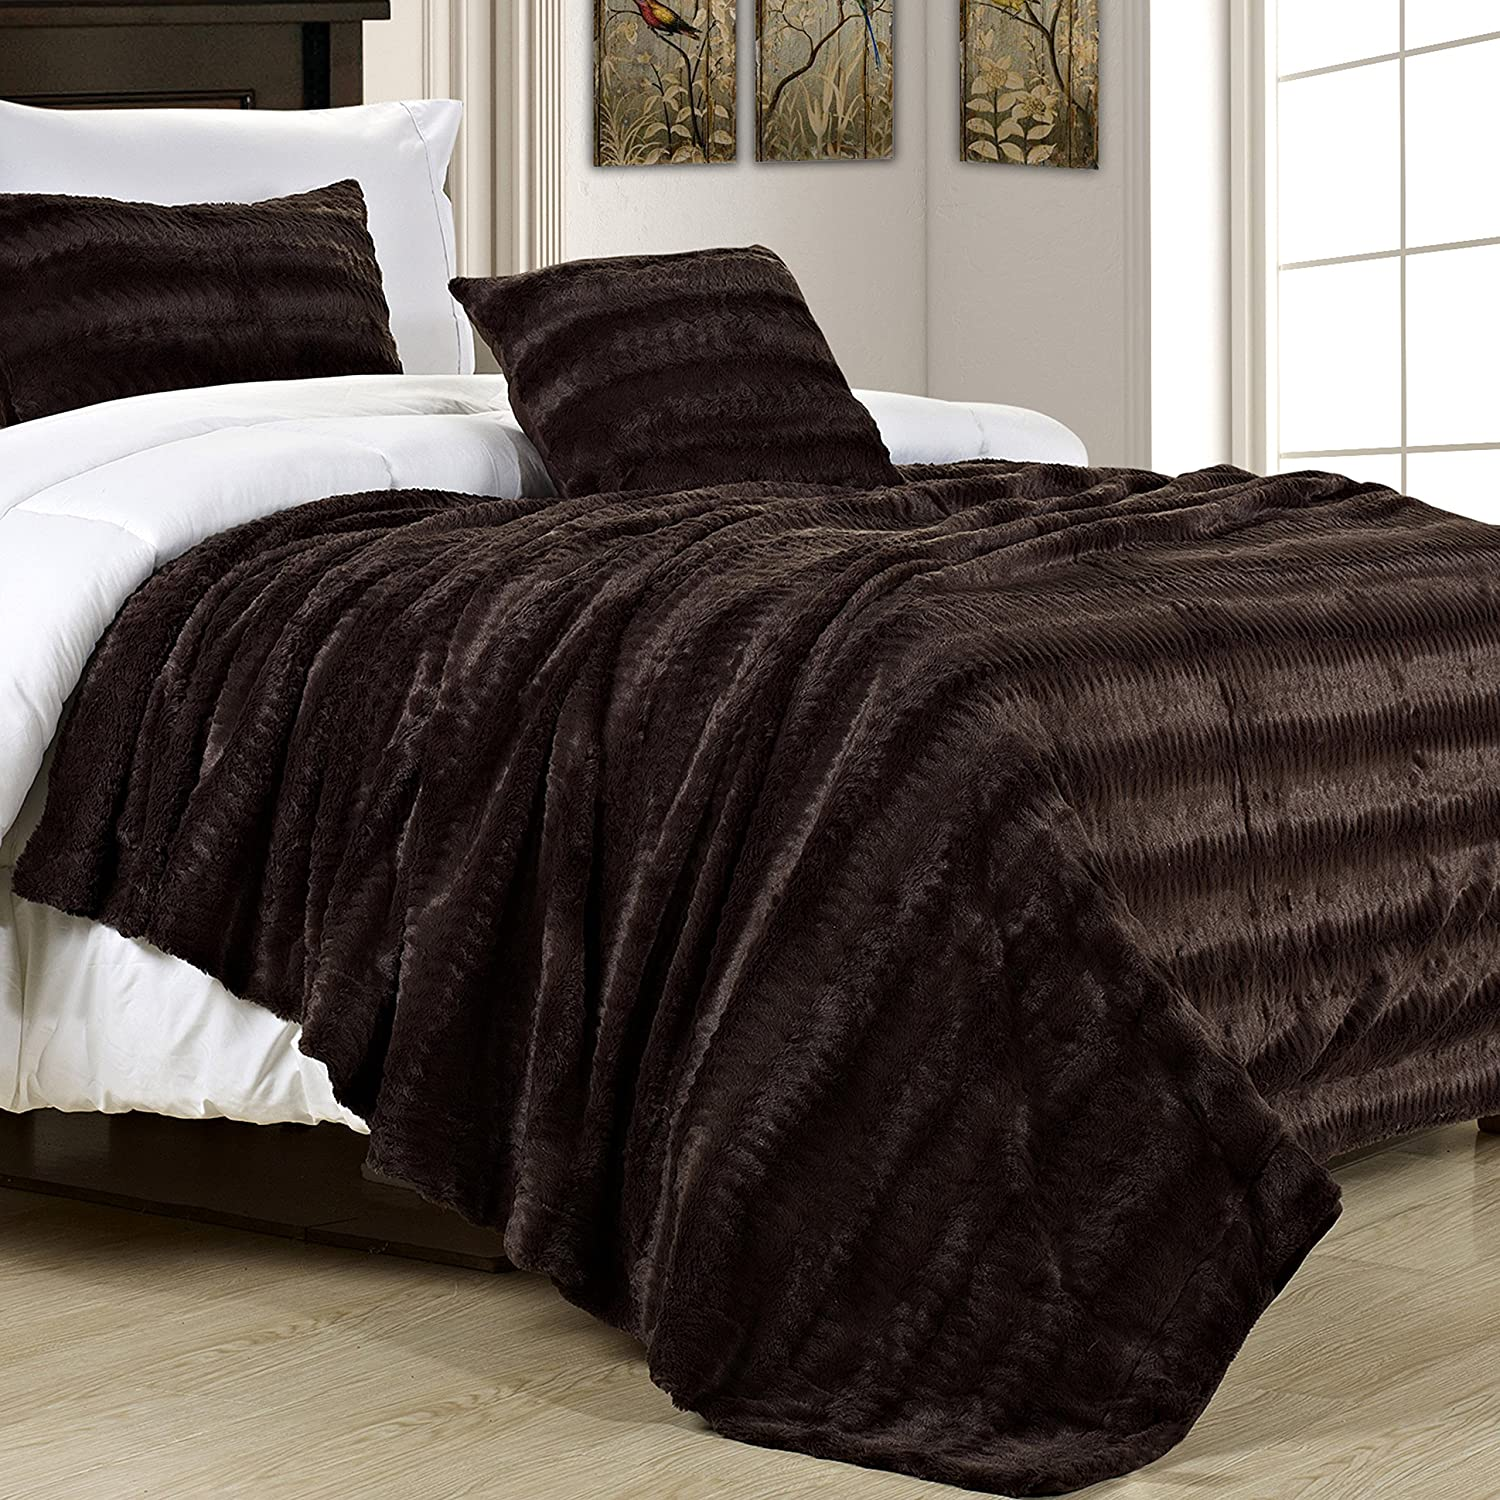 Faux Fur Duvet Cover King Size Sweetgalas